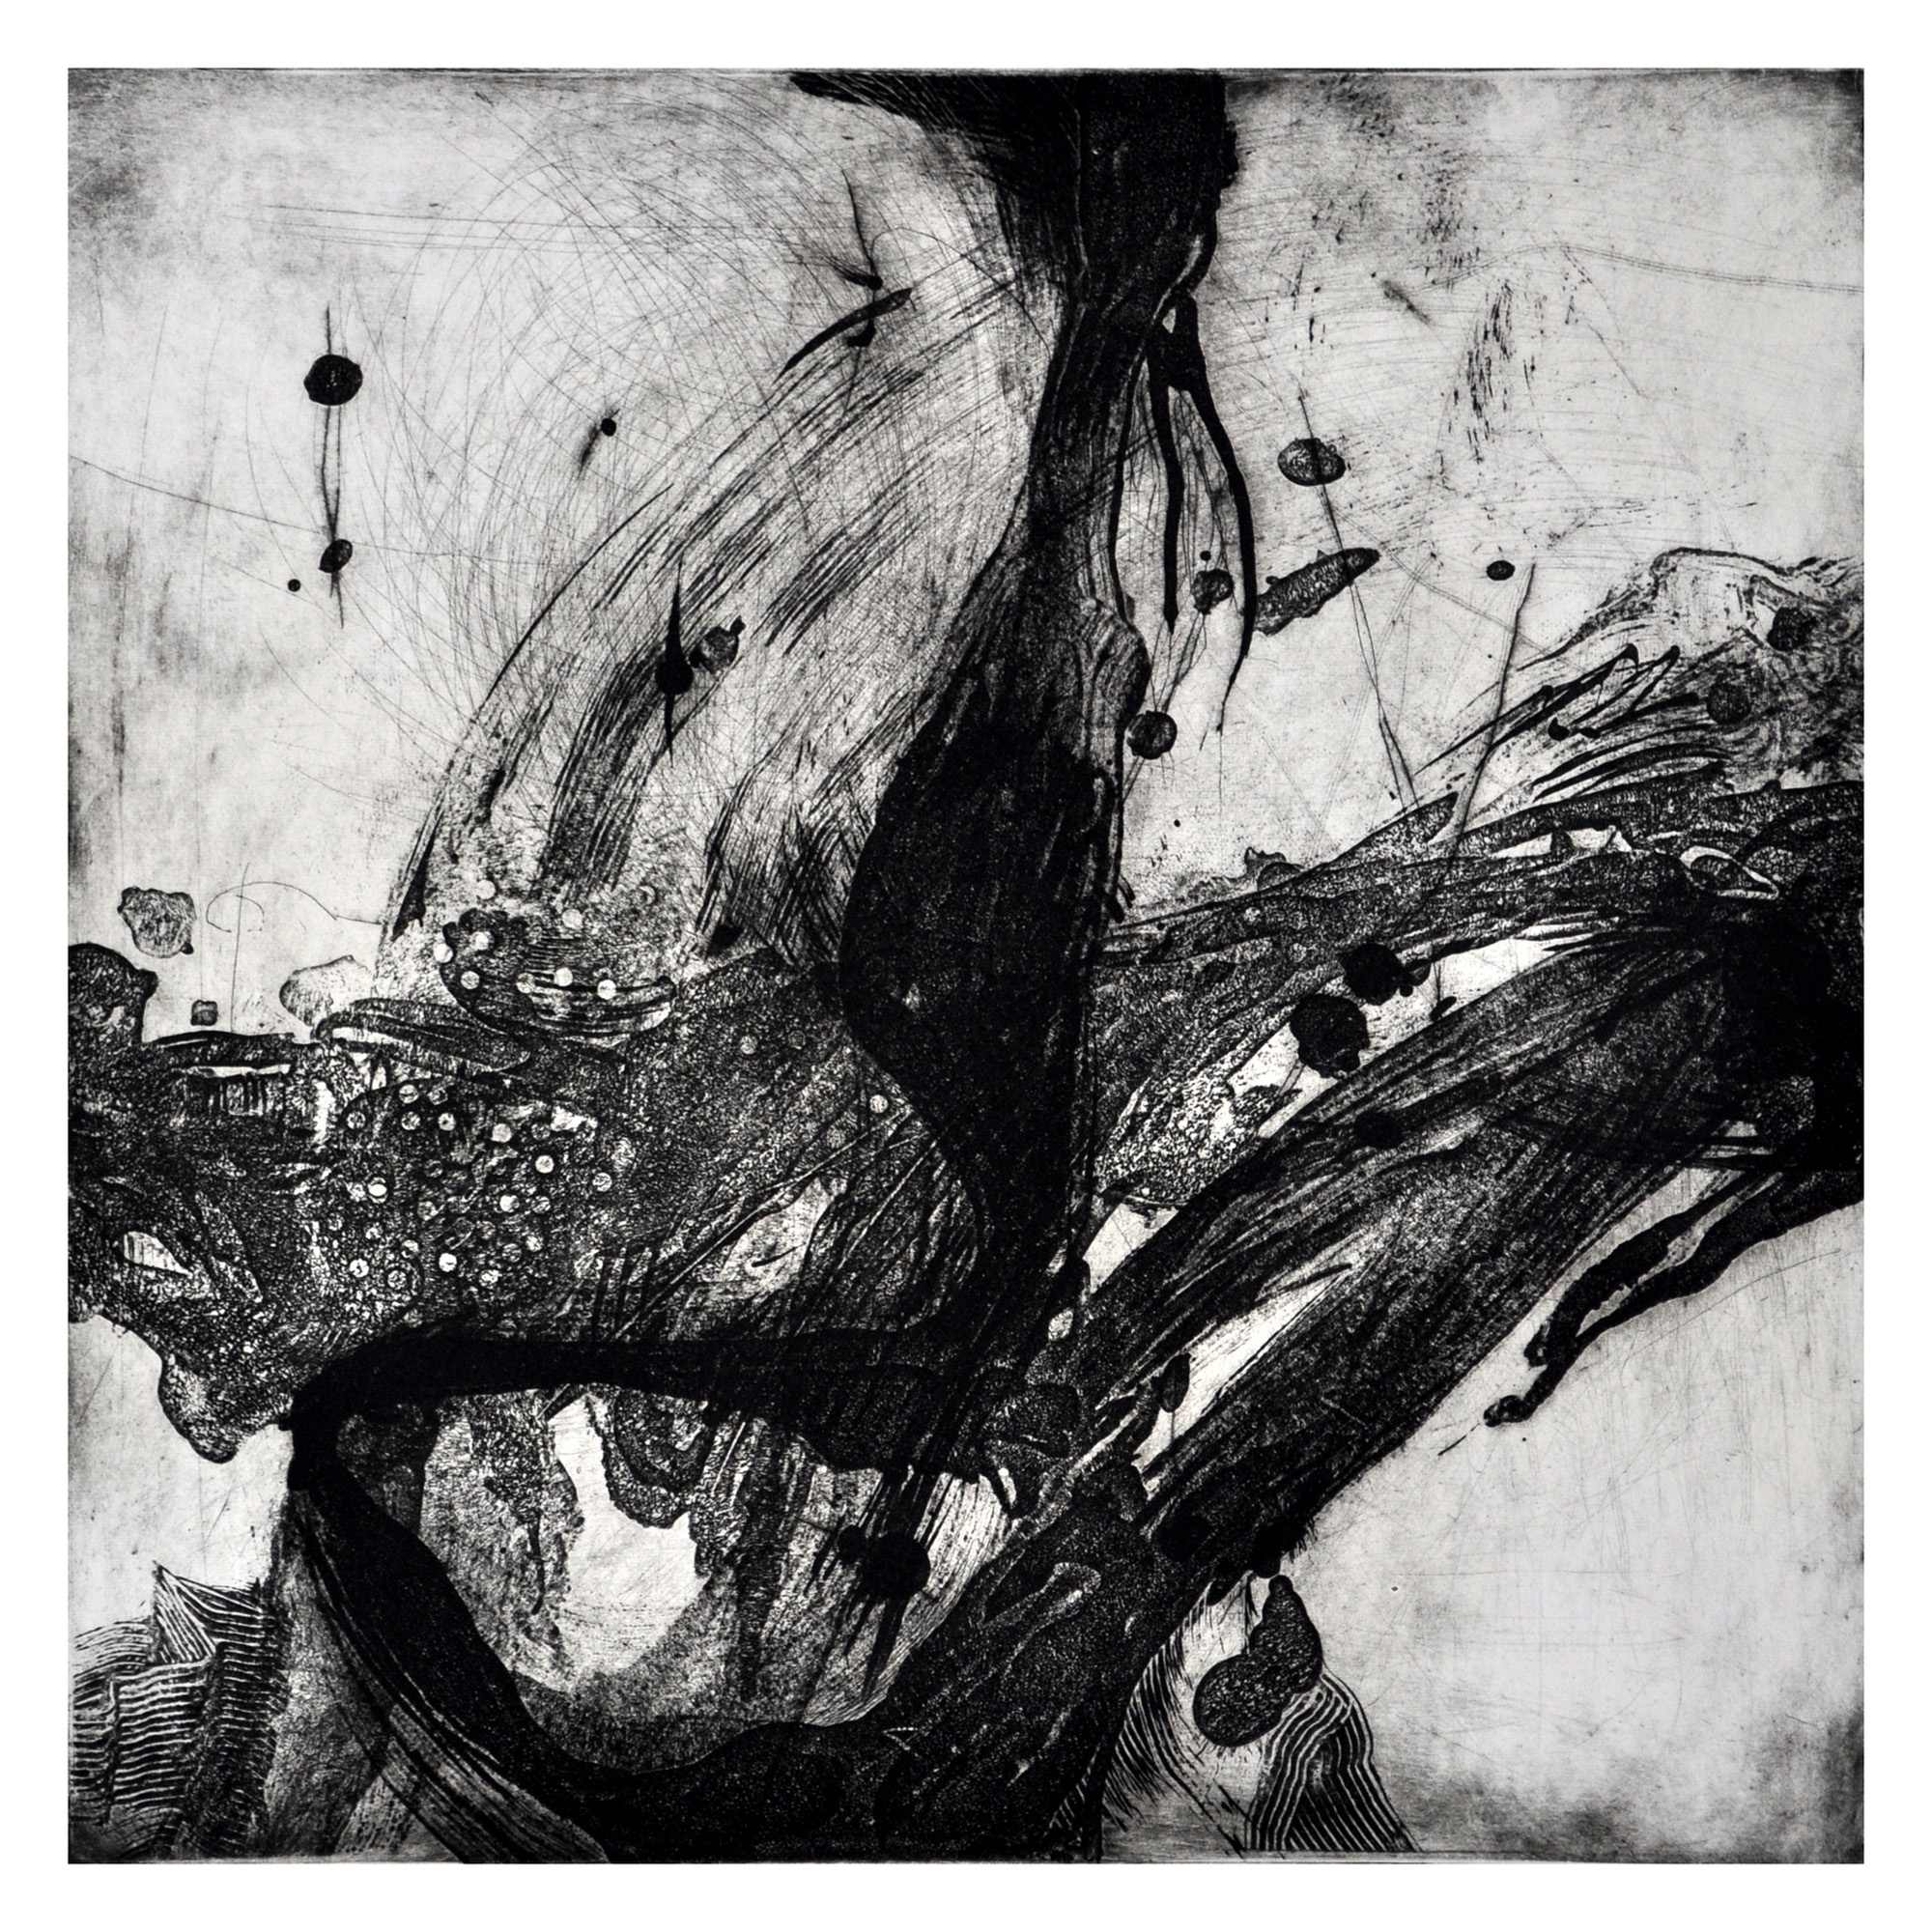 Abdelsalam Salem   Accumulation of time 6#  Intaglio 19.75 x 19.75 inches, APS 248G